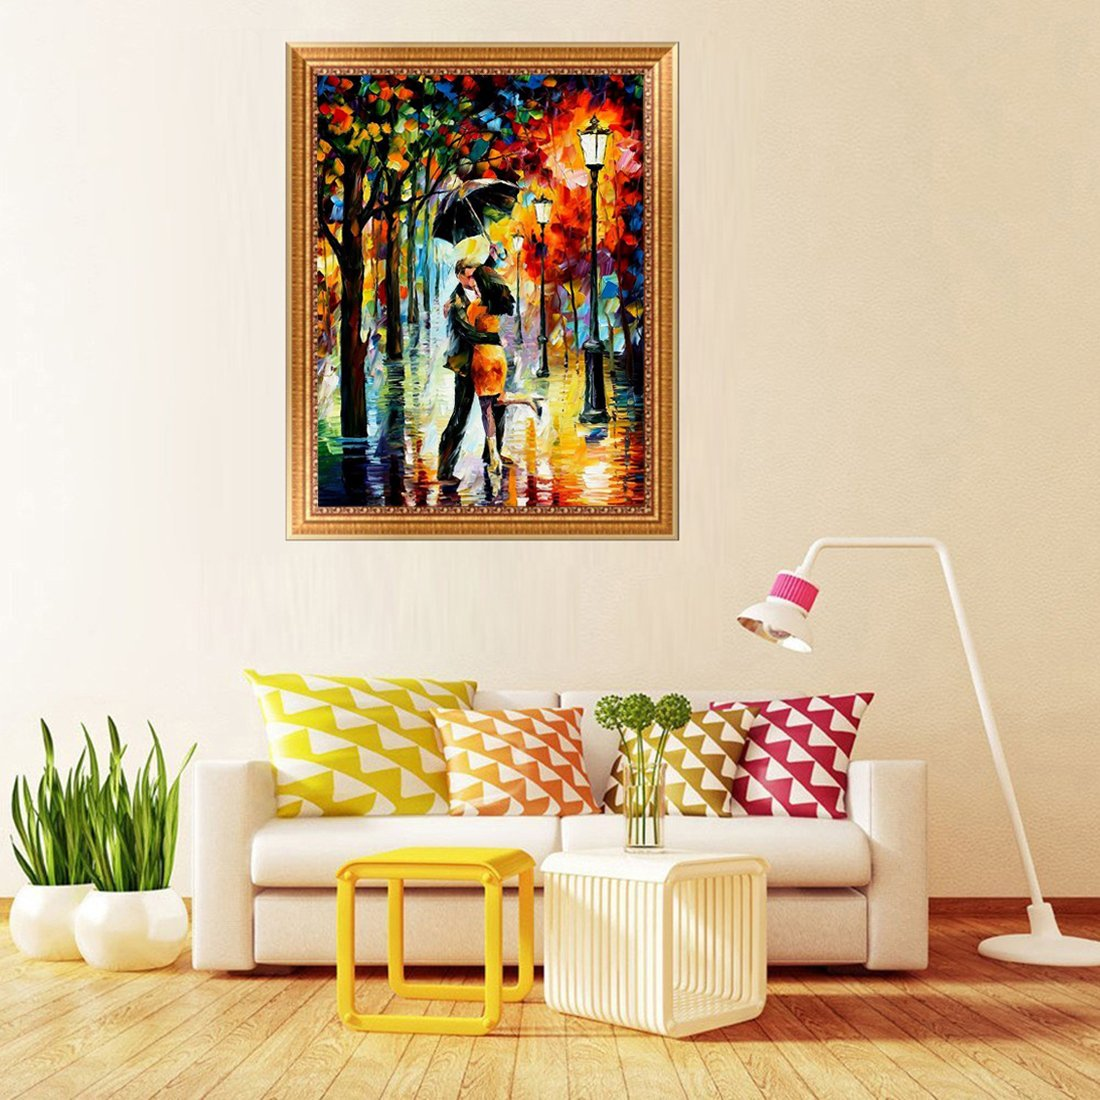 5D Diamond Painting Kit DIY Full Drill Arts Crafts Wall Decor 2 Pack by Yomiie, for Living Room Rainy Night Lovers (12.6x16.5inch/32x42cm) & Walking in Rainy Night (15.7x10.6inch/40x27cm)